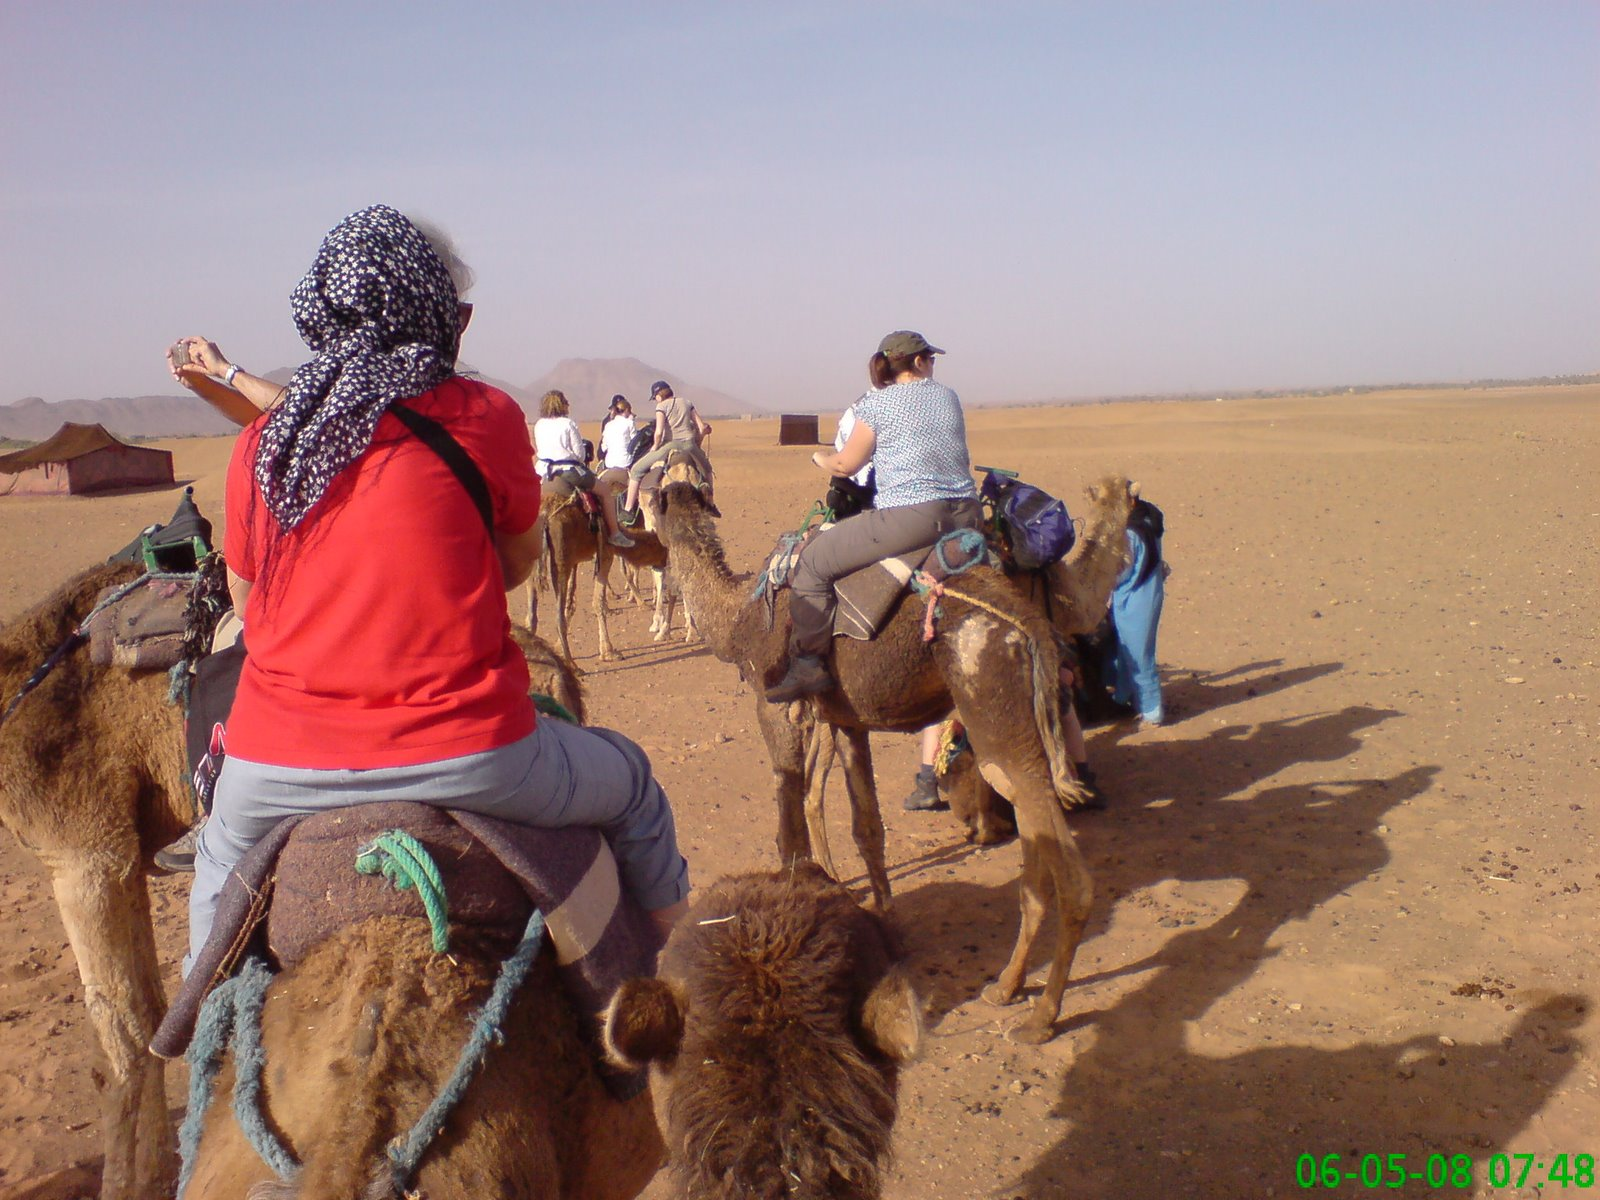 Oh no, not another camel trek, ouch